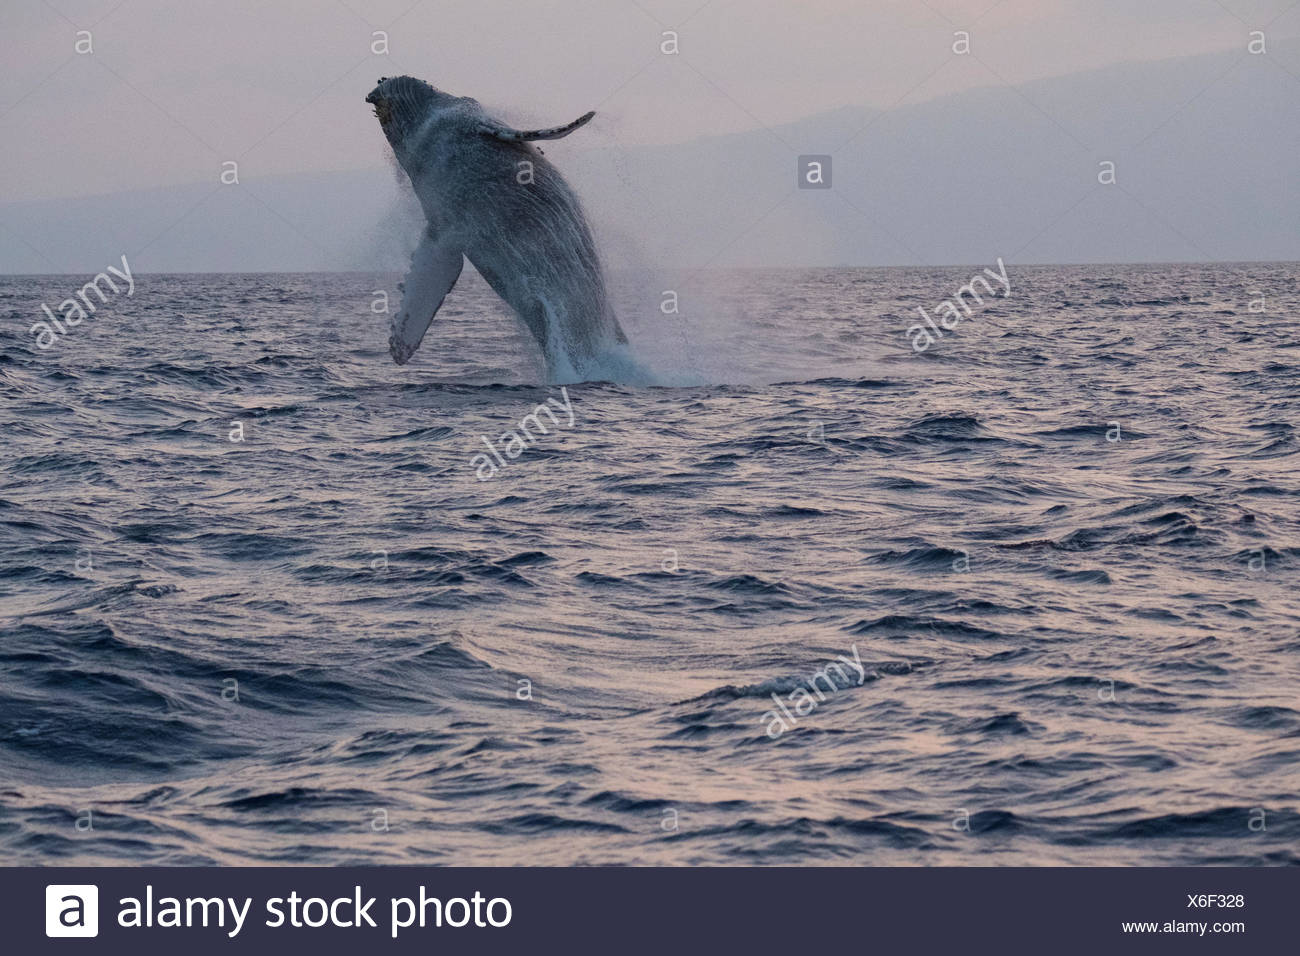 Humpback whale breaching at sunset. - Stock Image